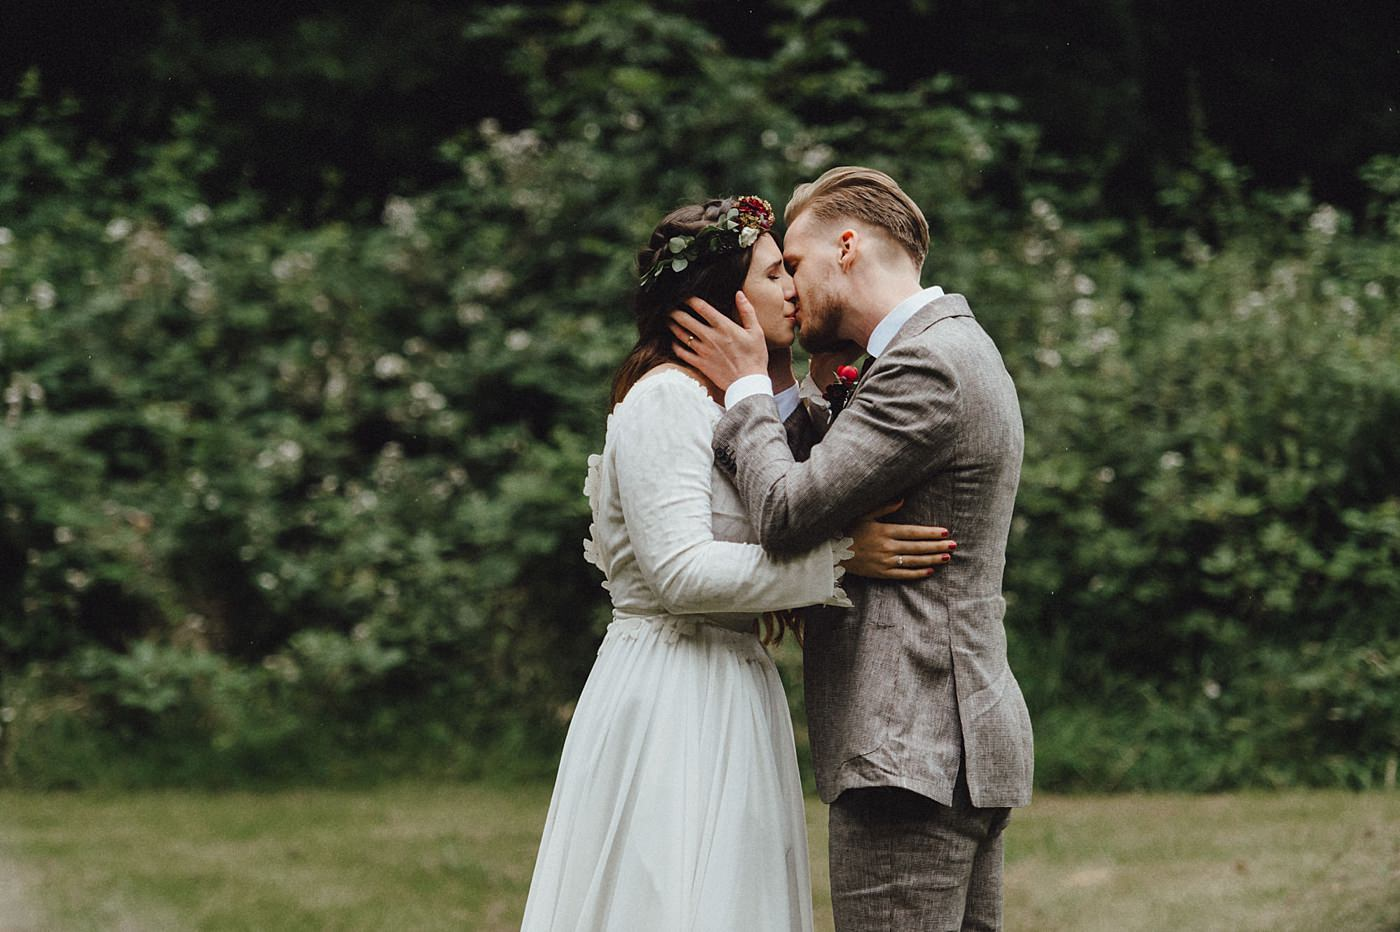 urban-elopement-wedding-124 Merve & Nils emotionales Elopement - Wedding Wesel & Schottlandurban elopement wedding 124 1